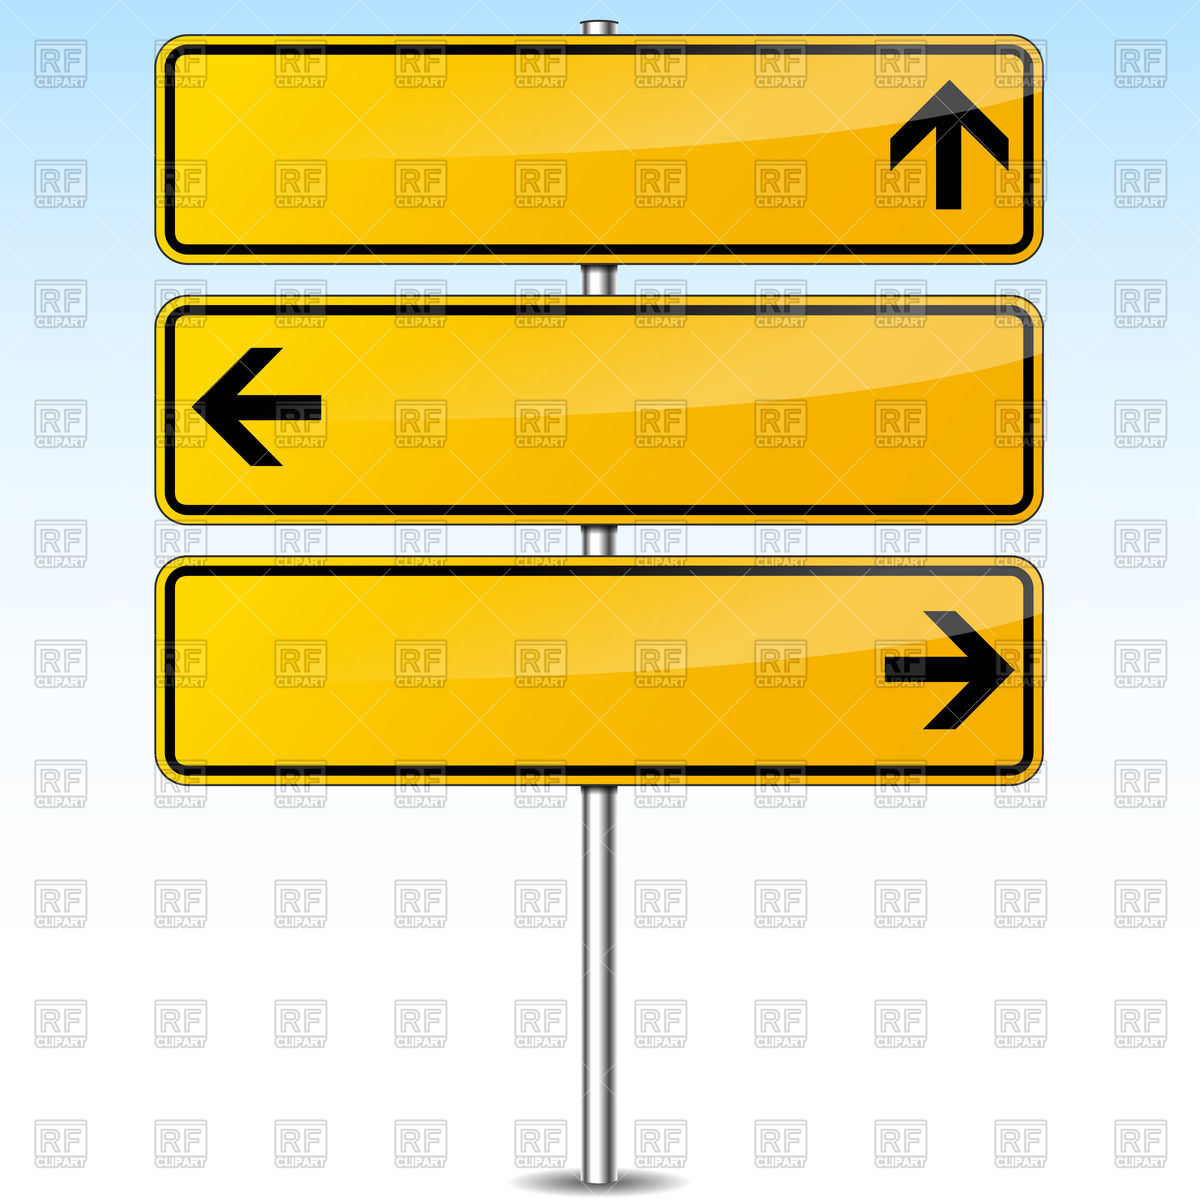 Free sign templates clipart graphic transparent library Road Sign Template Clipart | Free download best Road Sign Template ... graphic transparent library